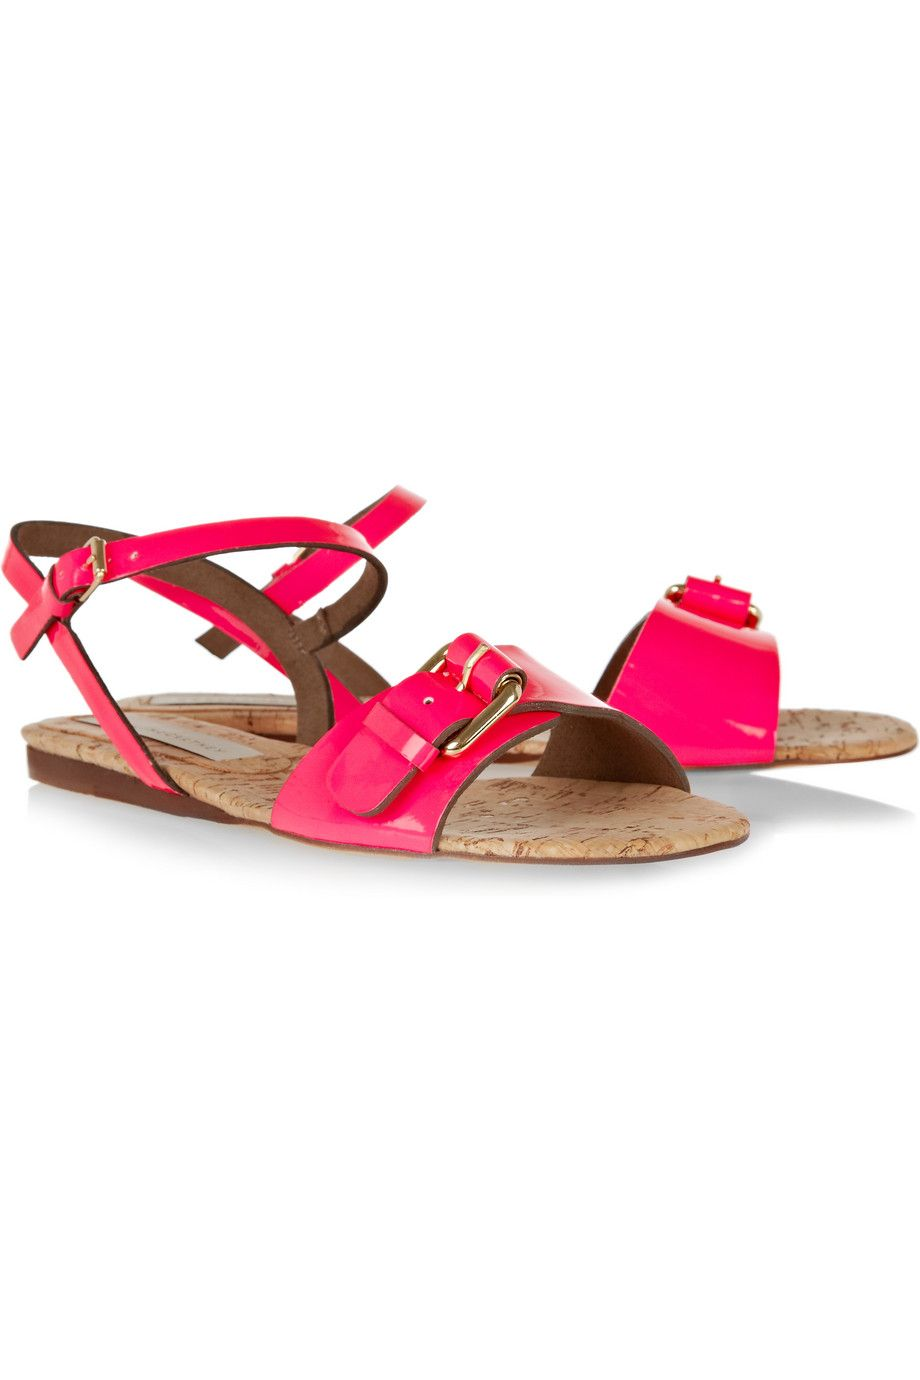 6d40b0a0932 Stella Mccartney Faux Patentleather and Cork Sandals